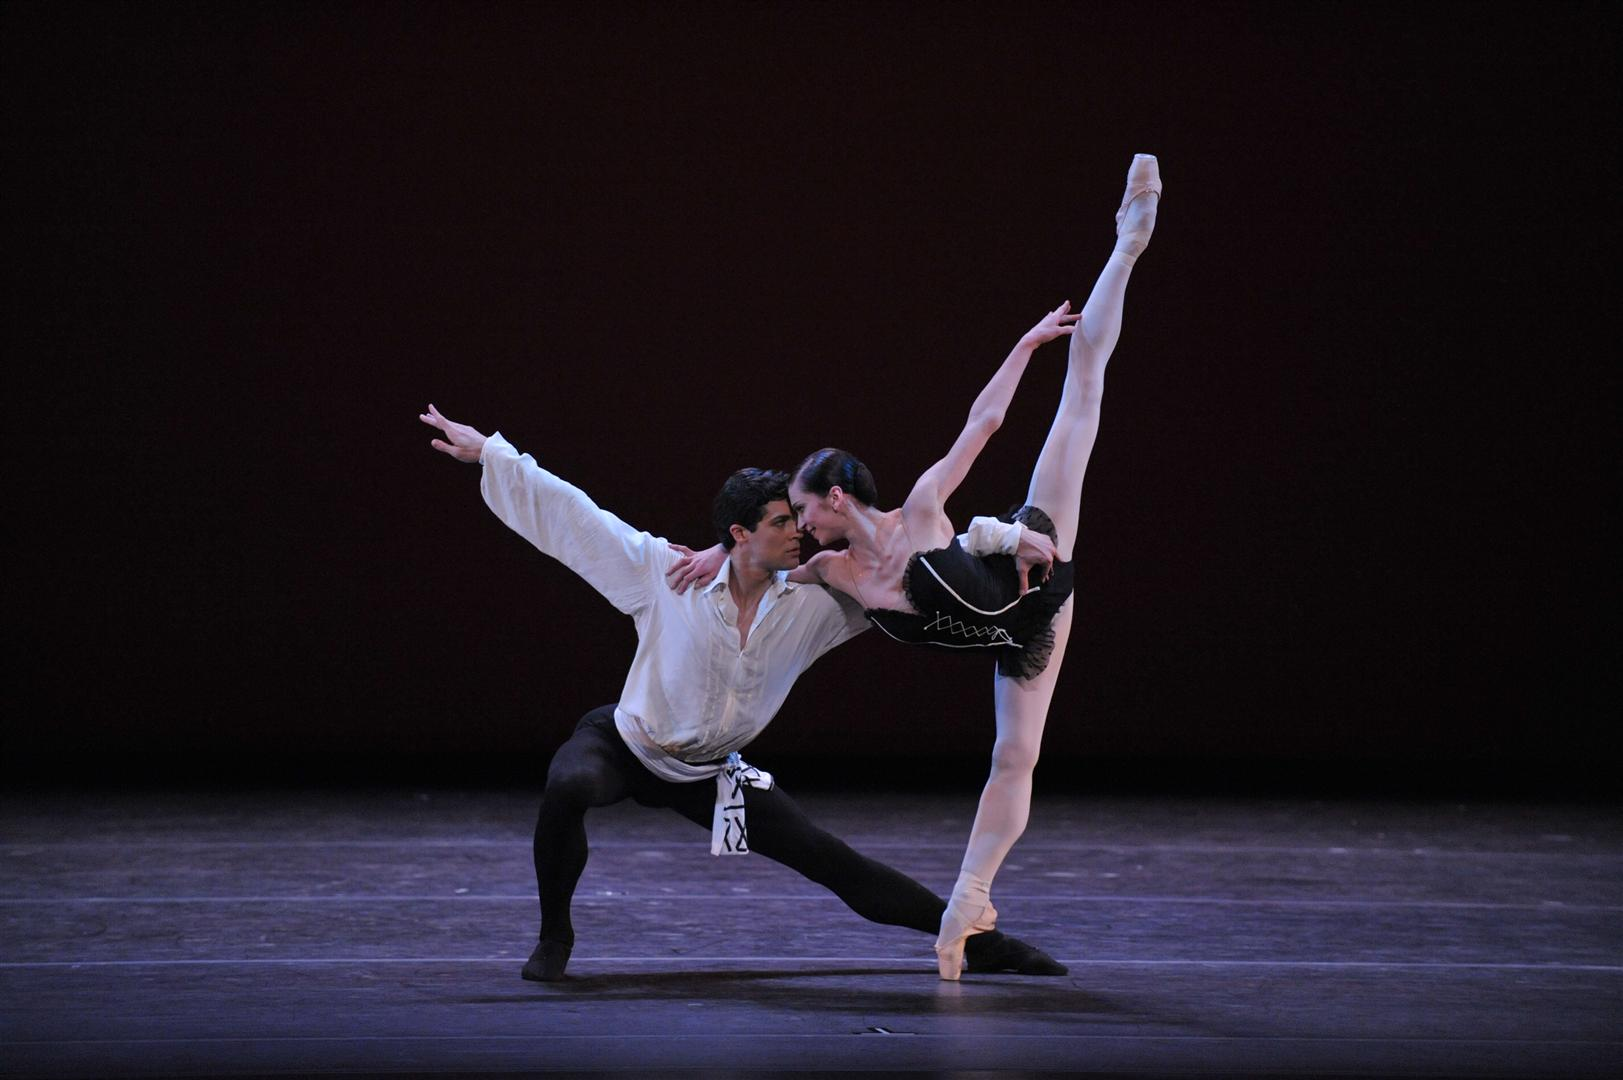 Polina-Semionova-as-Carmen-in-her-New-York-debut-with-Roberto-Bolle-2008-Photo_-Siggul_VAM